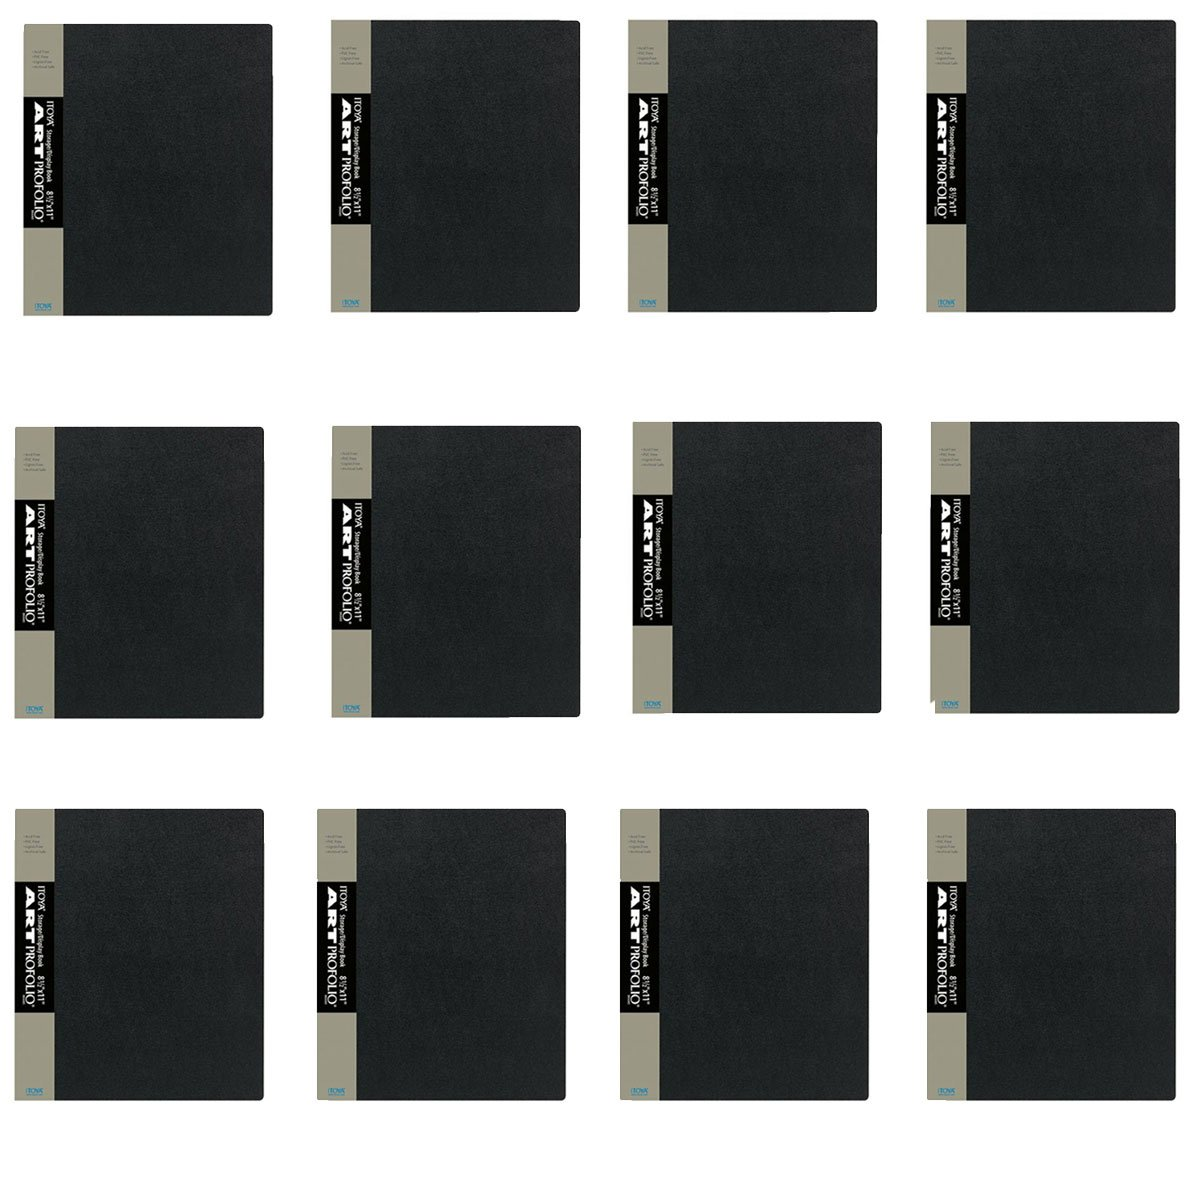 Pack Of 12 Itoya Art Profolio 8.5 x 11 Presentation Photo Album Book IA-12-8